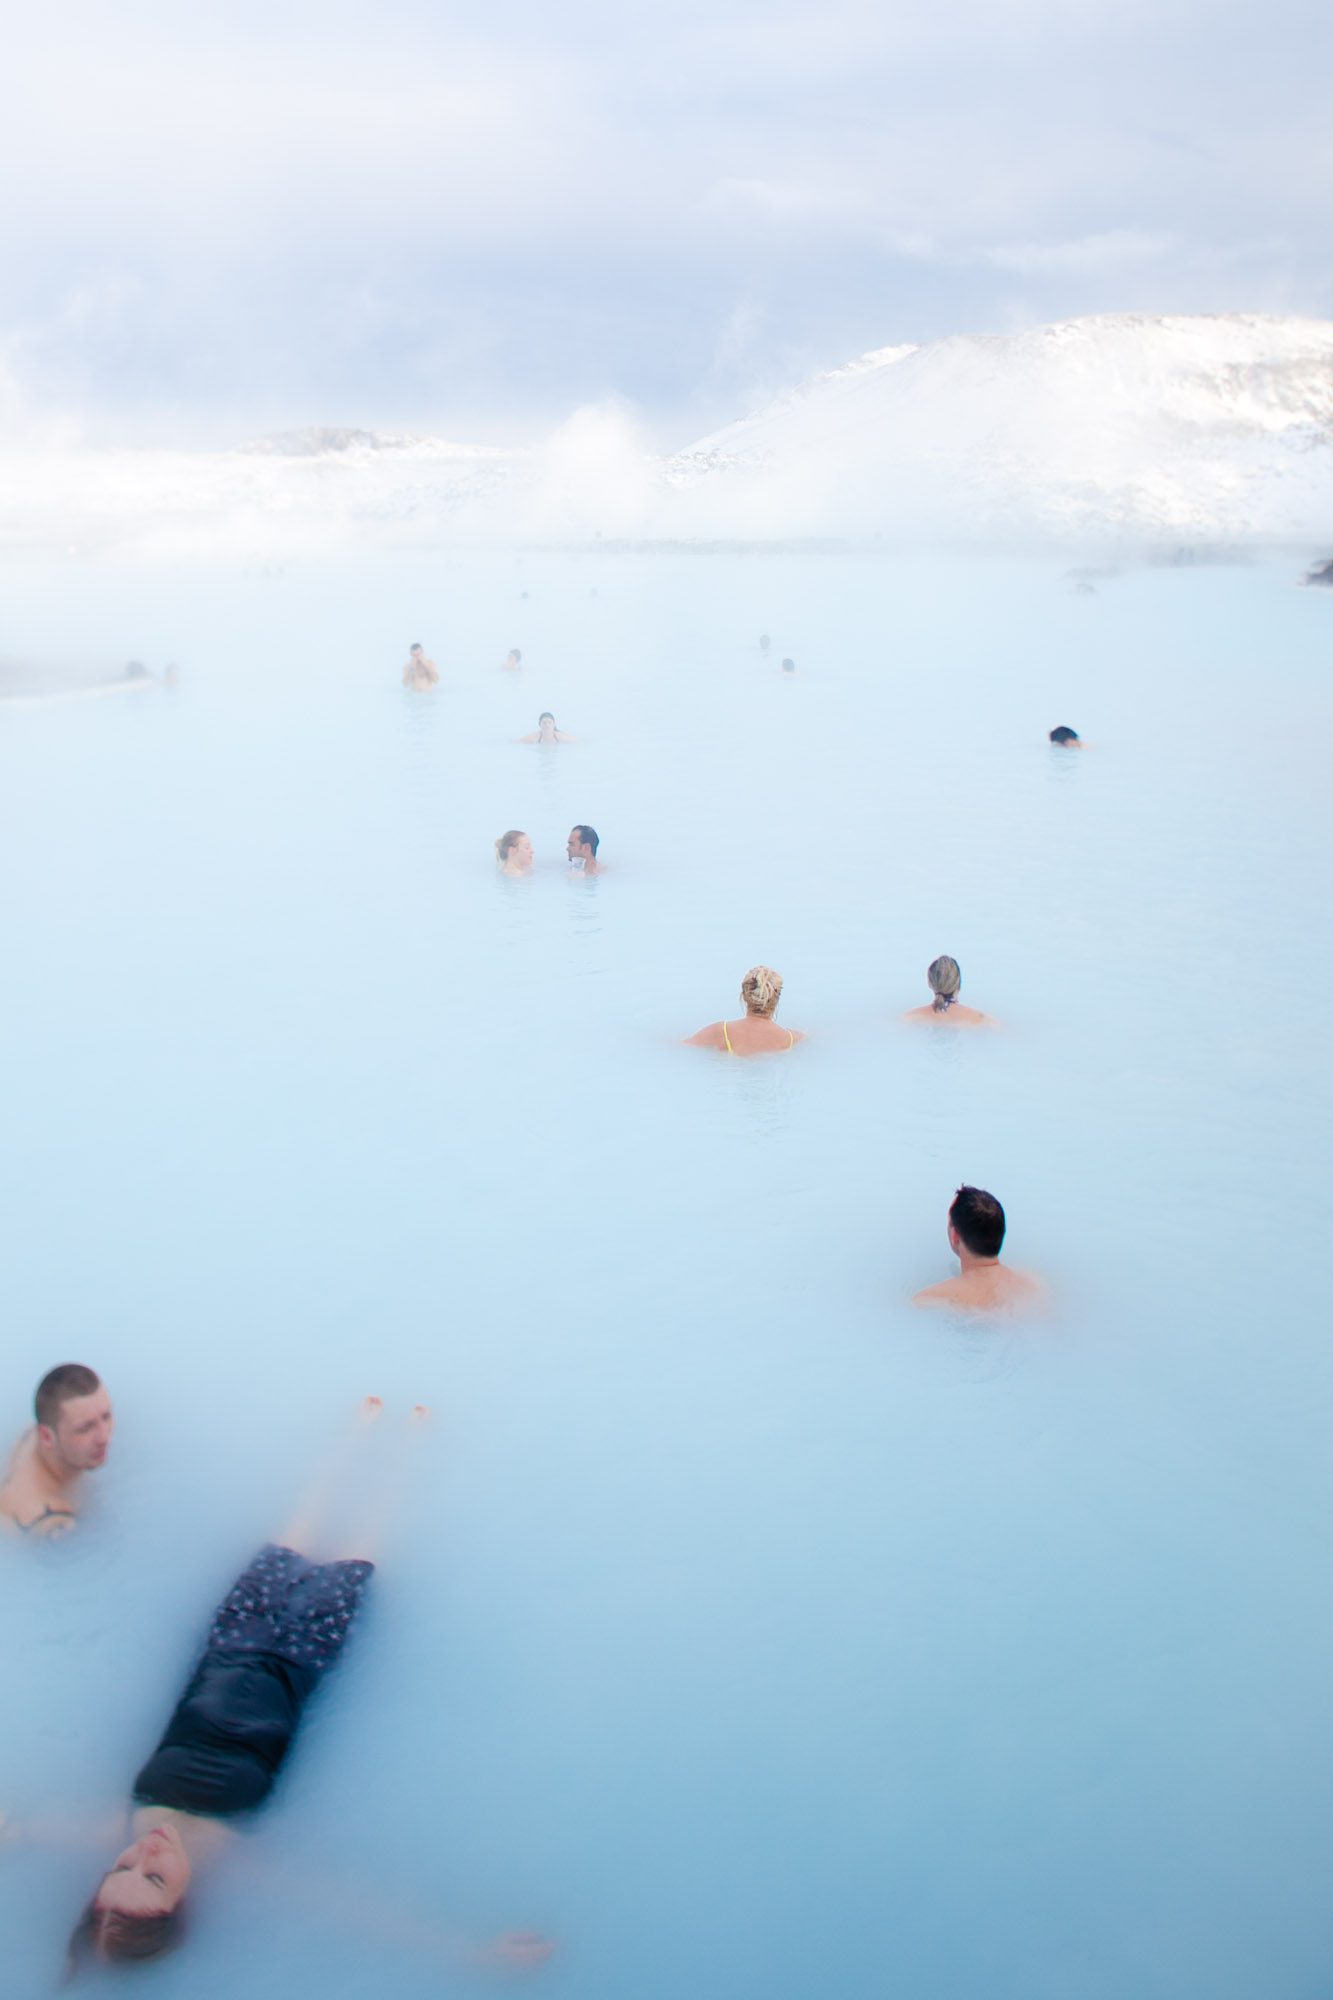 The Blue Lagoon in Grindavik, Iceland. The miniral rich waters of the Lagoon is actually the waste product of the Svartsengi geothermal power plant.